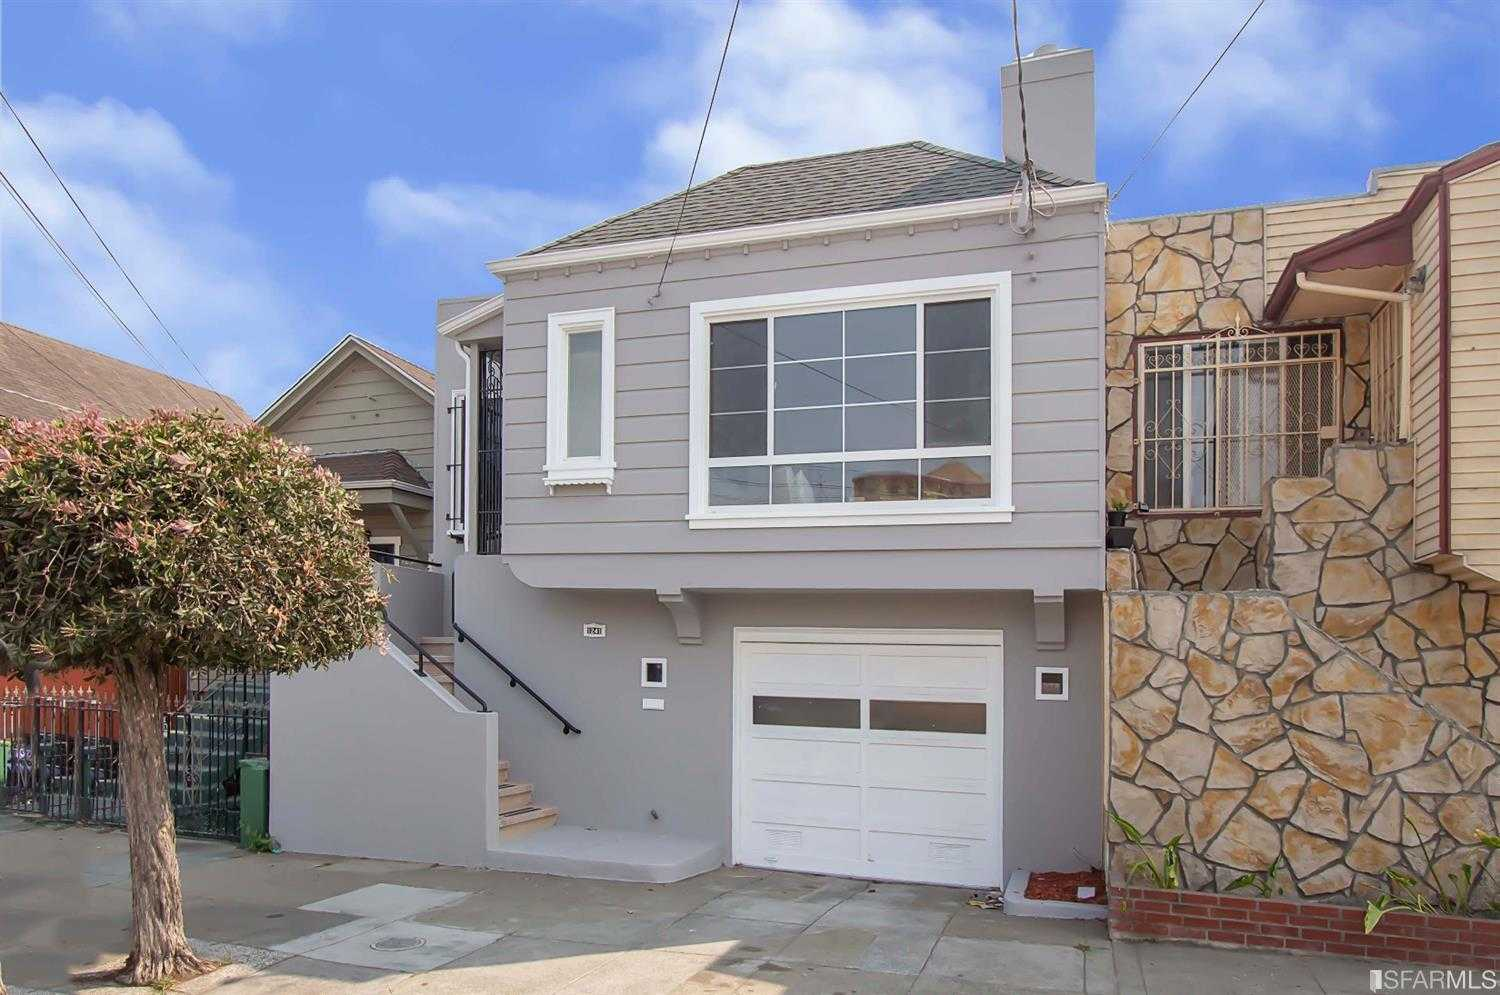 1241 Shafter Avenue San Francisco, CA 94124